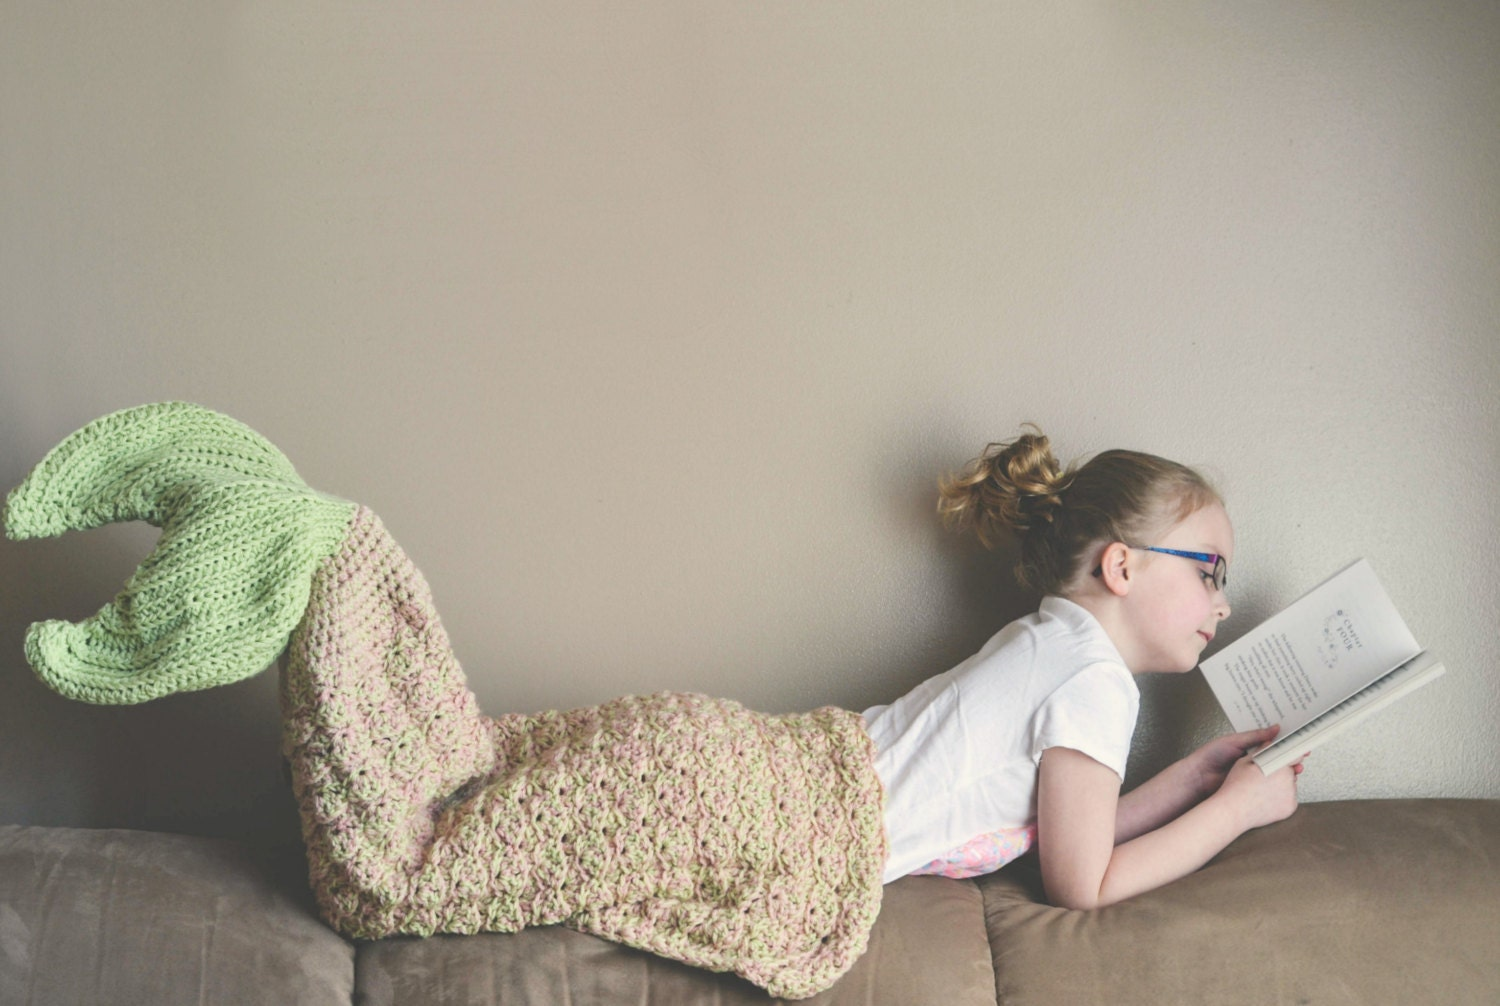 Crochet Pattern for Mermaid Tail Blanket by crochetbyjennifer